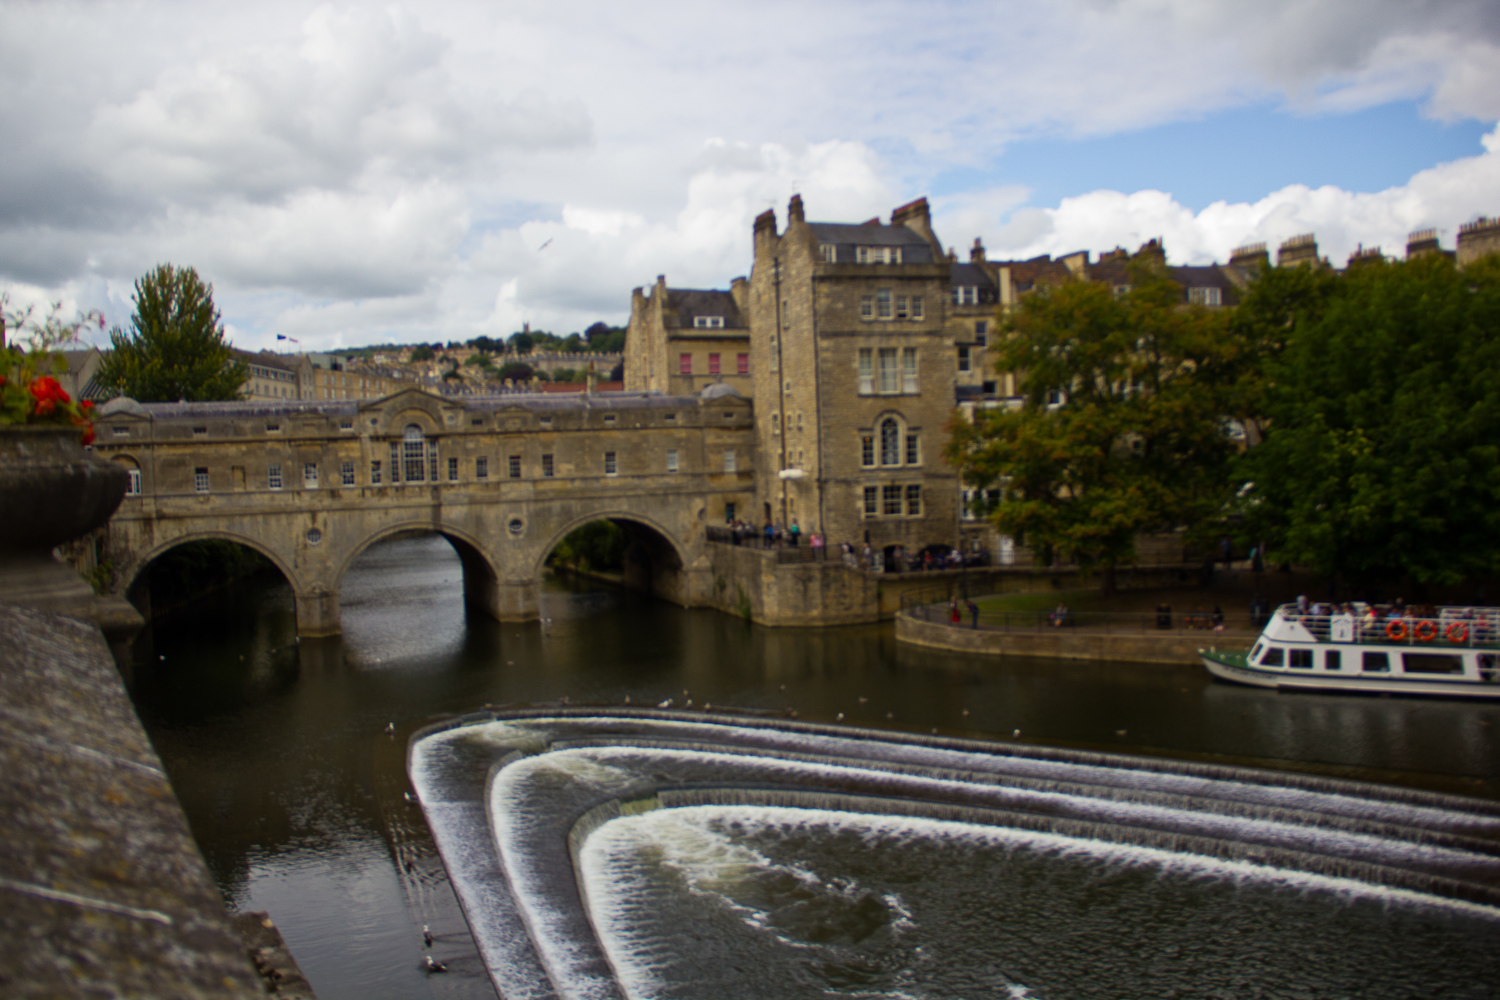 The Waterways in Bath